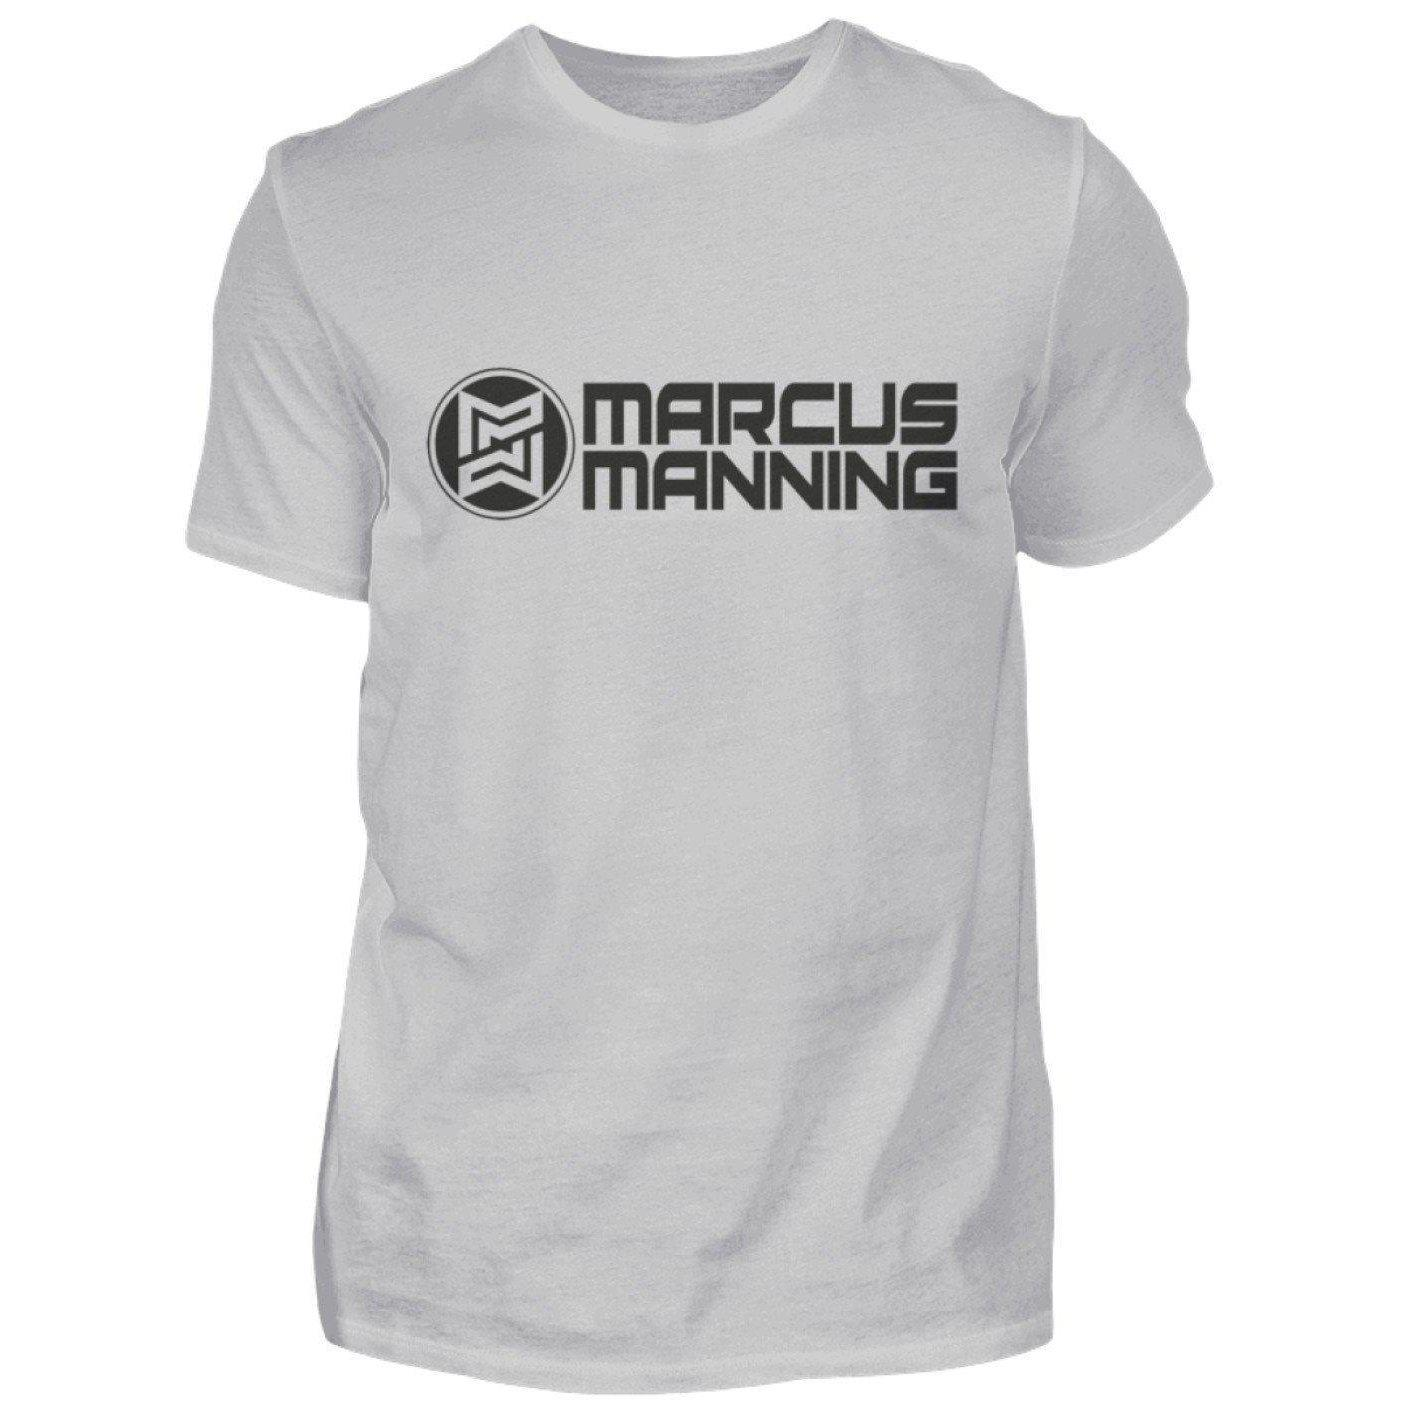 Marcus Manning Light Collection - Men's Shirt Men's Basic T-Shirt Pacific Gray / S - Rave On!® the club & techno scene shop for cool young fashion streetwear style & fashion outfits + sexy festival 420 stuff